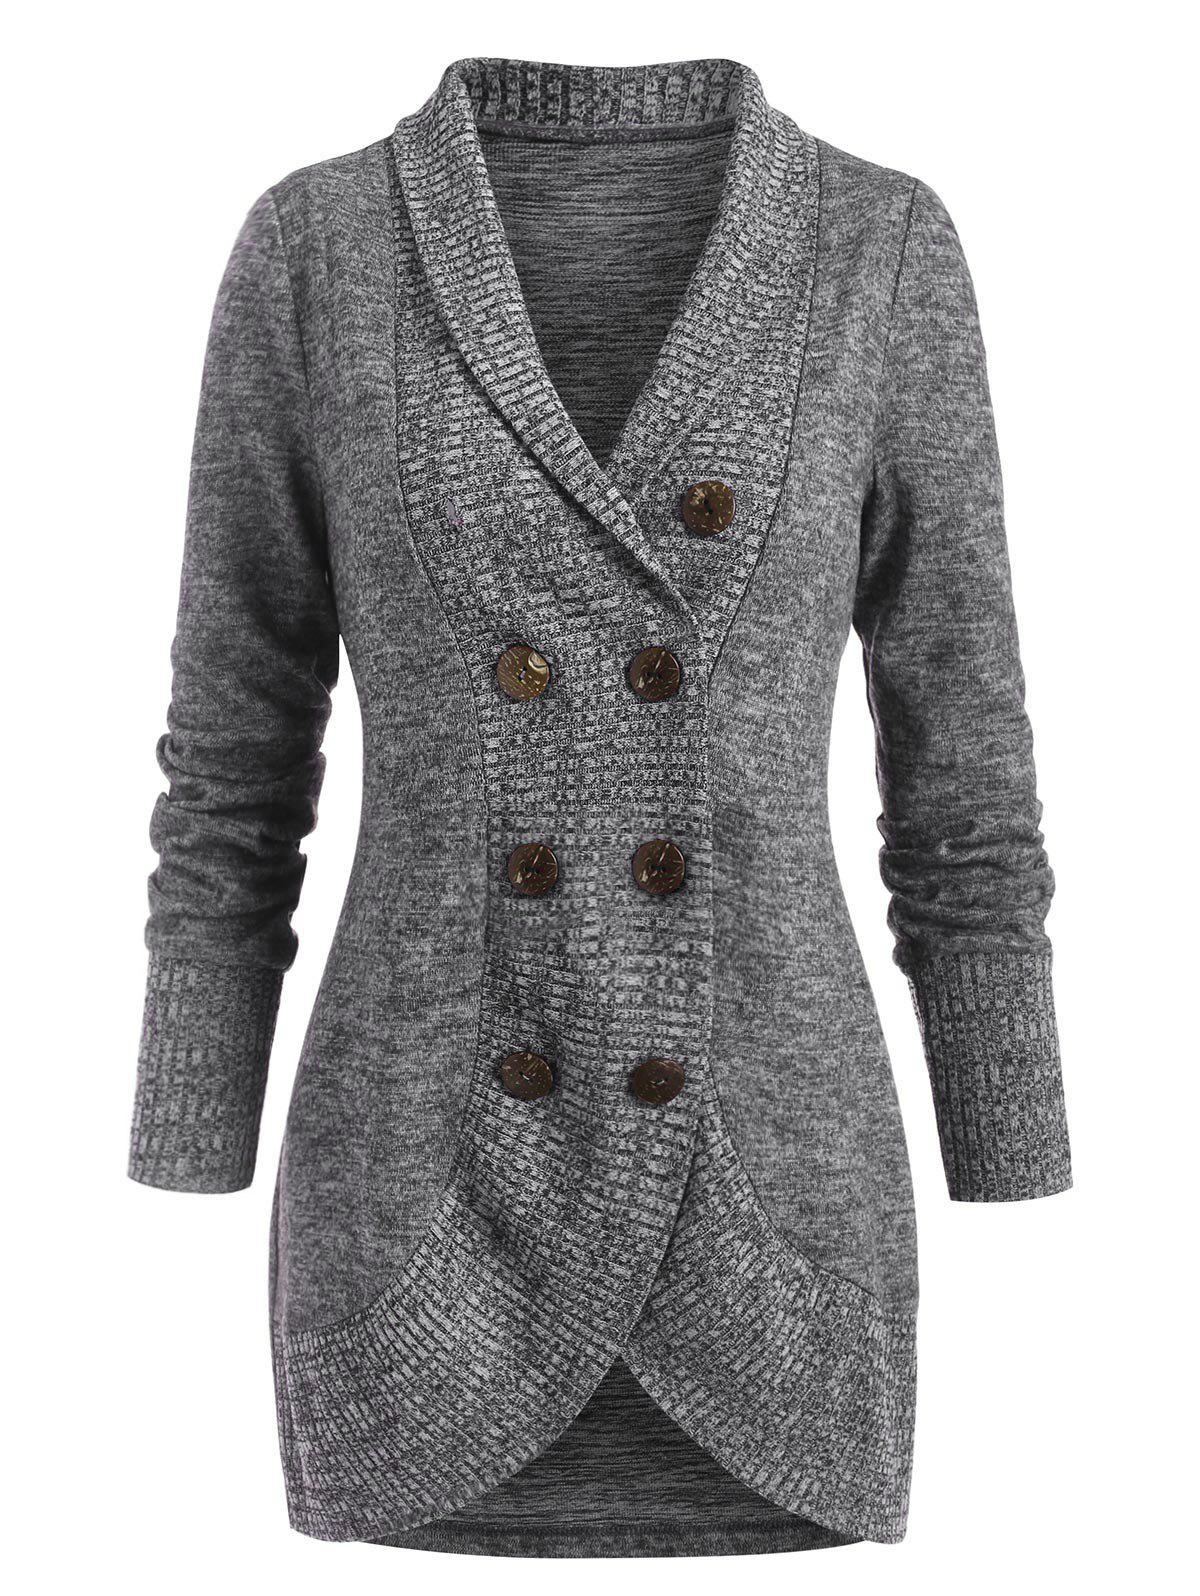 Shawl Collar Heathered Double Breasted Sweater Coat - GRAY M